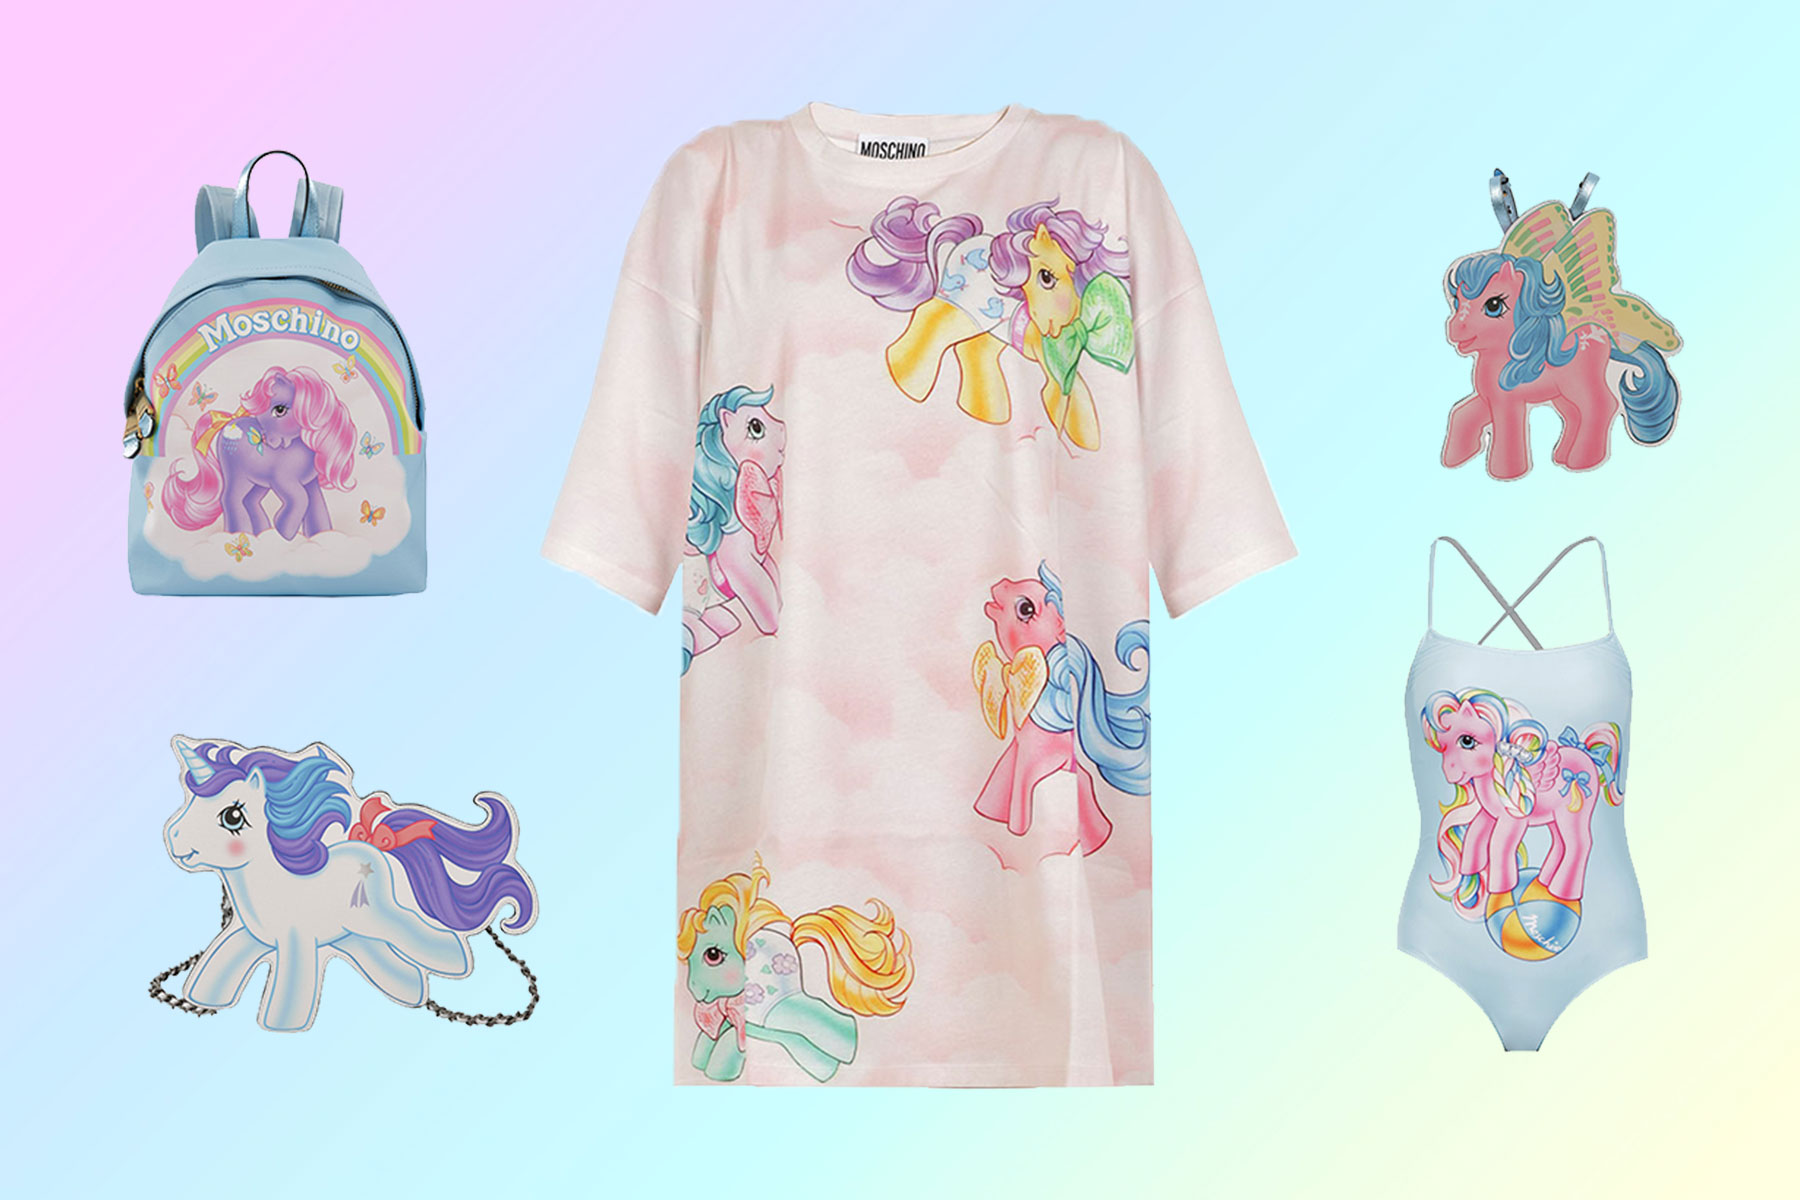 Moschino s SS18 capsule collection is outfit goals for My Little Pony fans 57056eb9aadcb